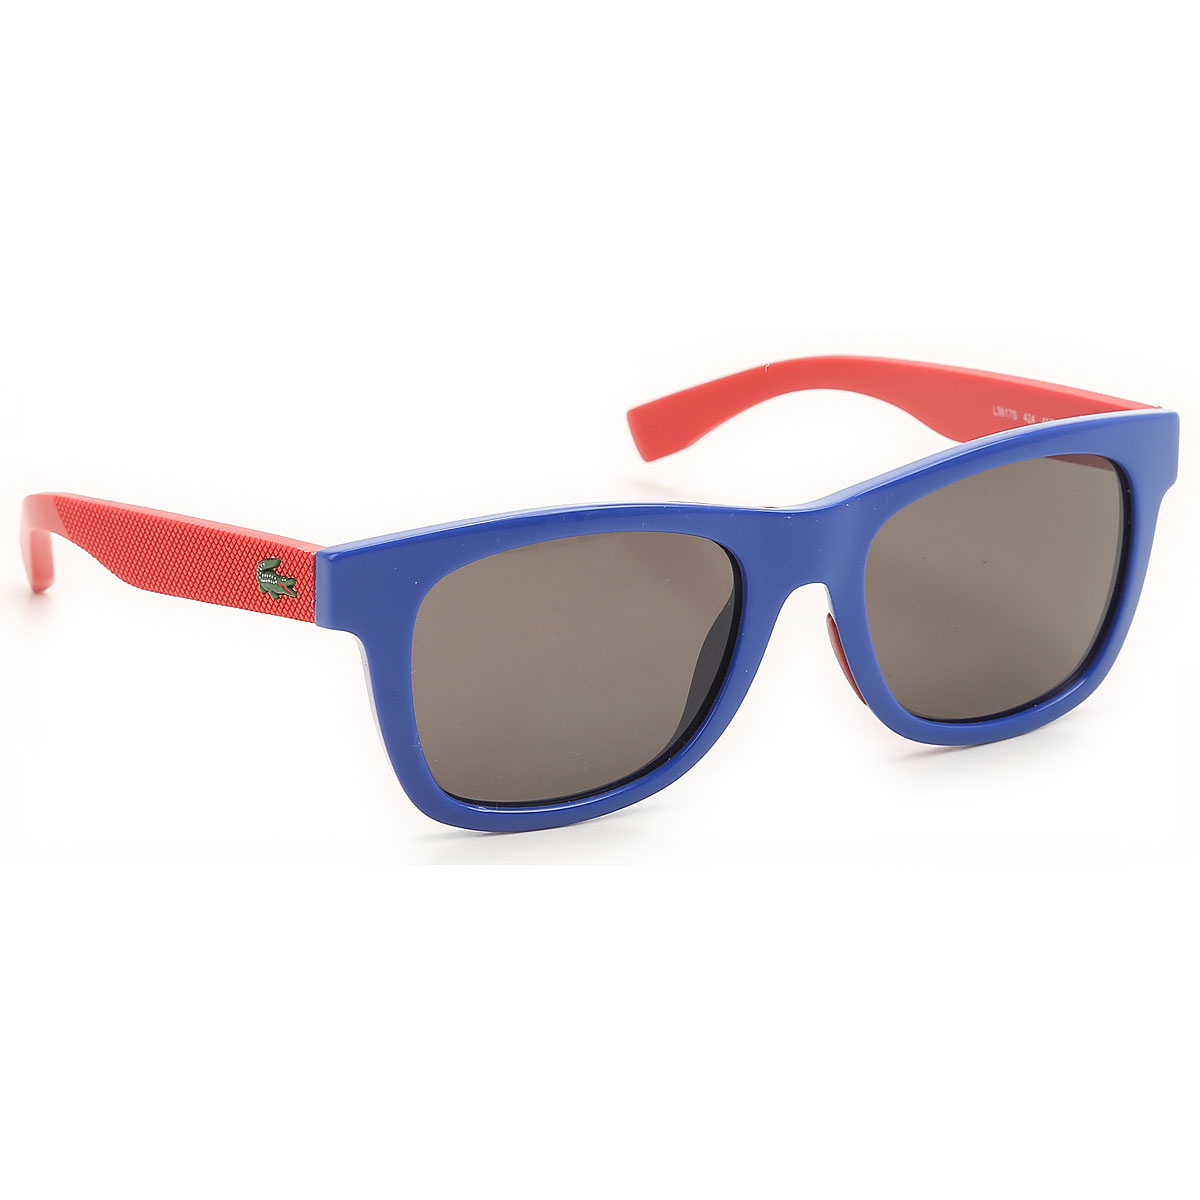 Image of Lacoste Kids Sunglasses for Boys On Sale, ele, 2017